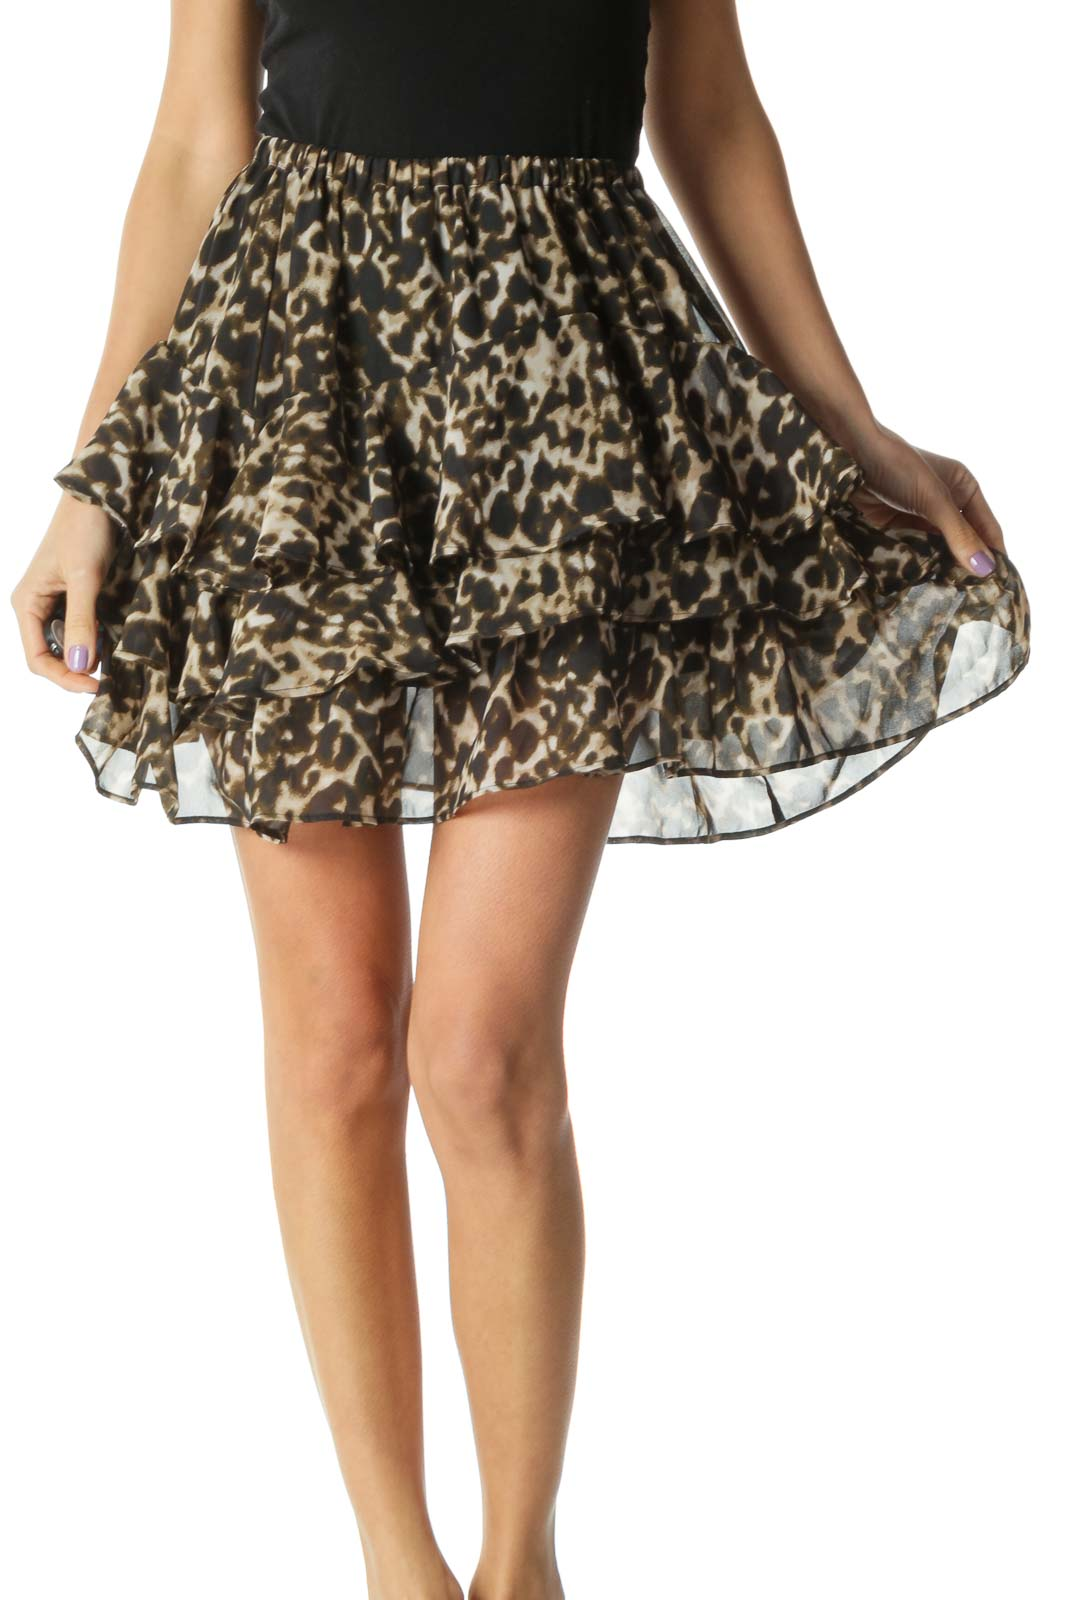 Black and Brown Cheetah Print Tiered Ruffled Flared Skirt